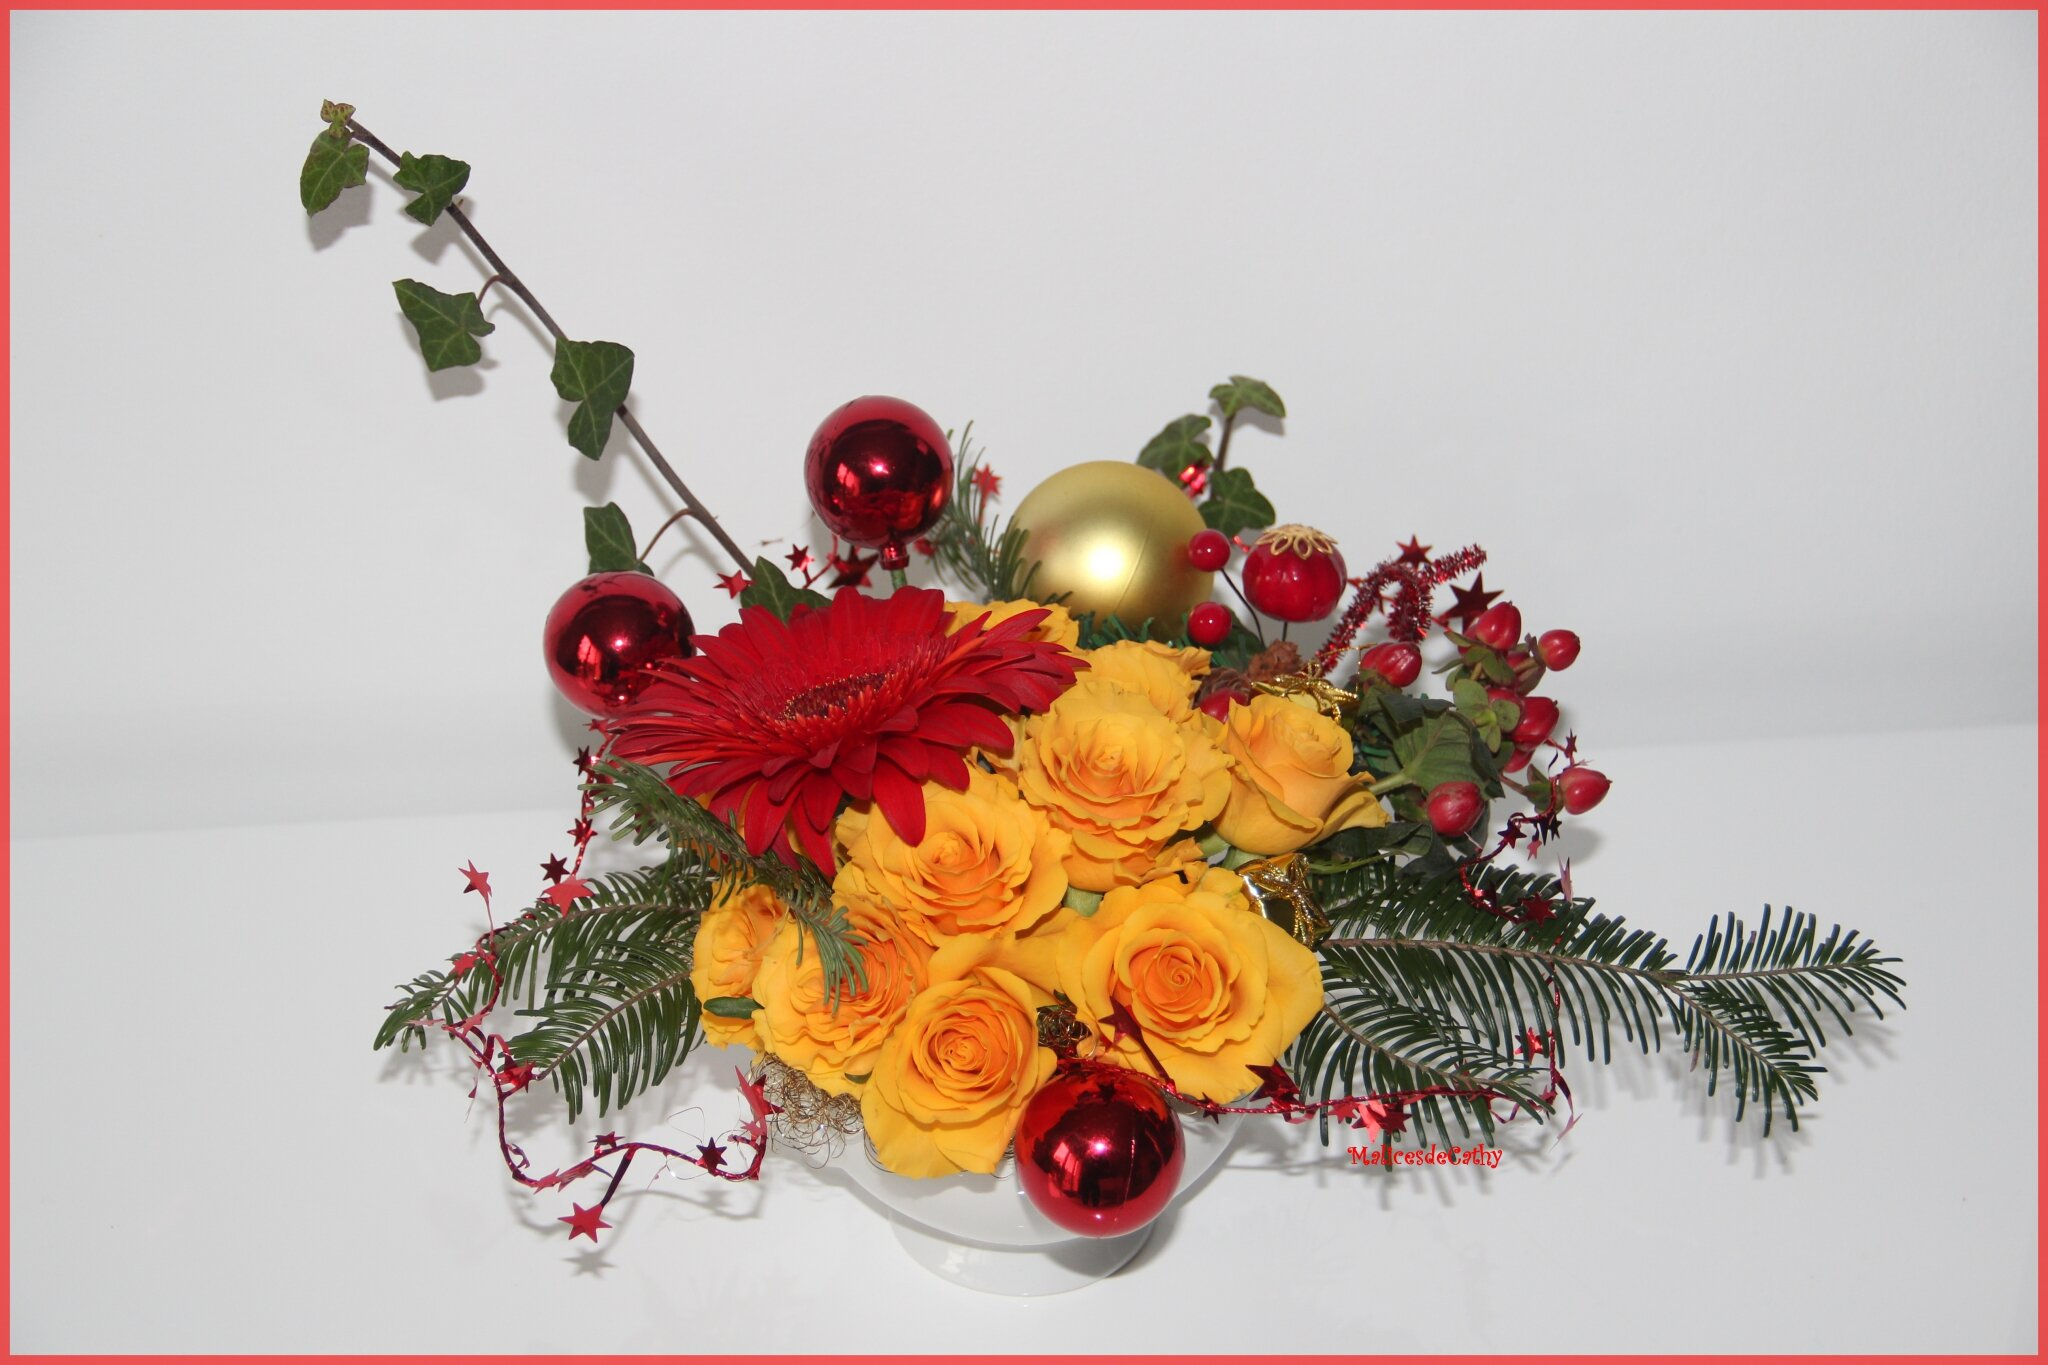 Composition florale de noel les malices de cathy - Composition florale noel originale ...